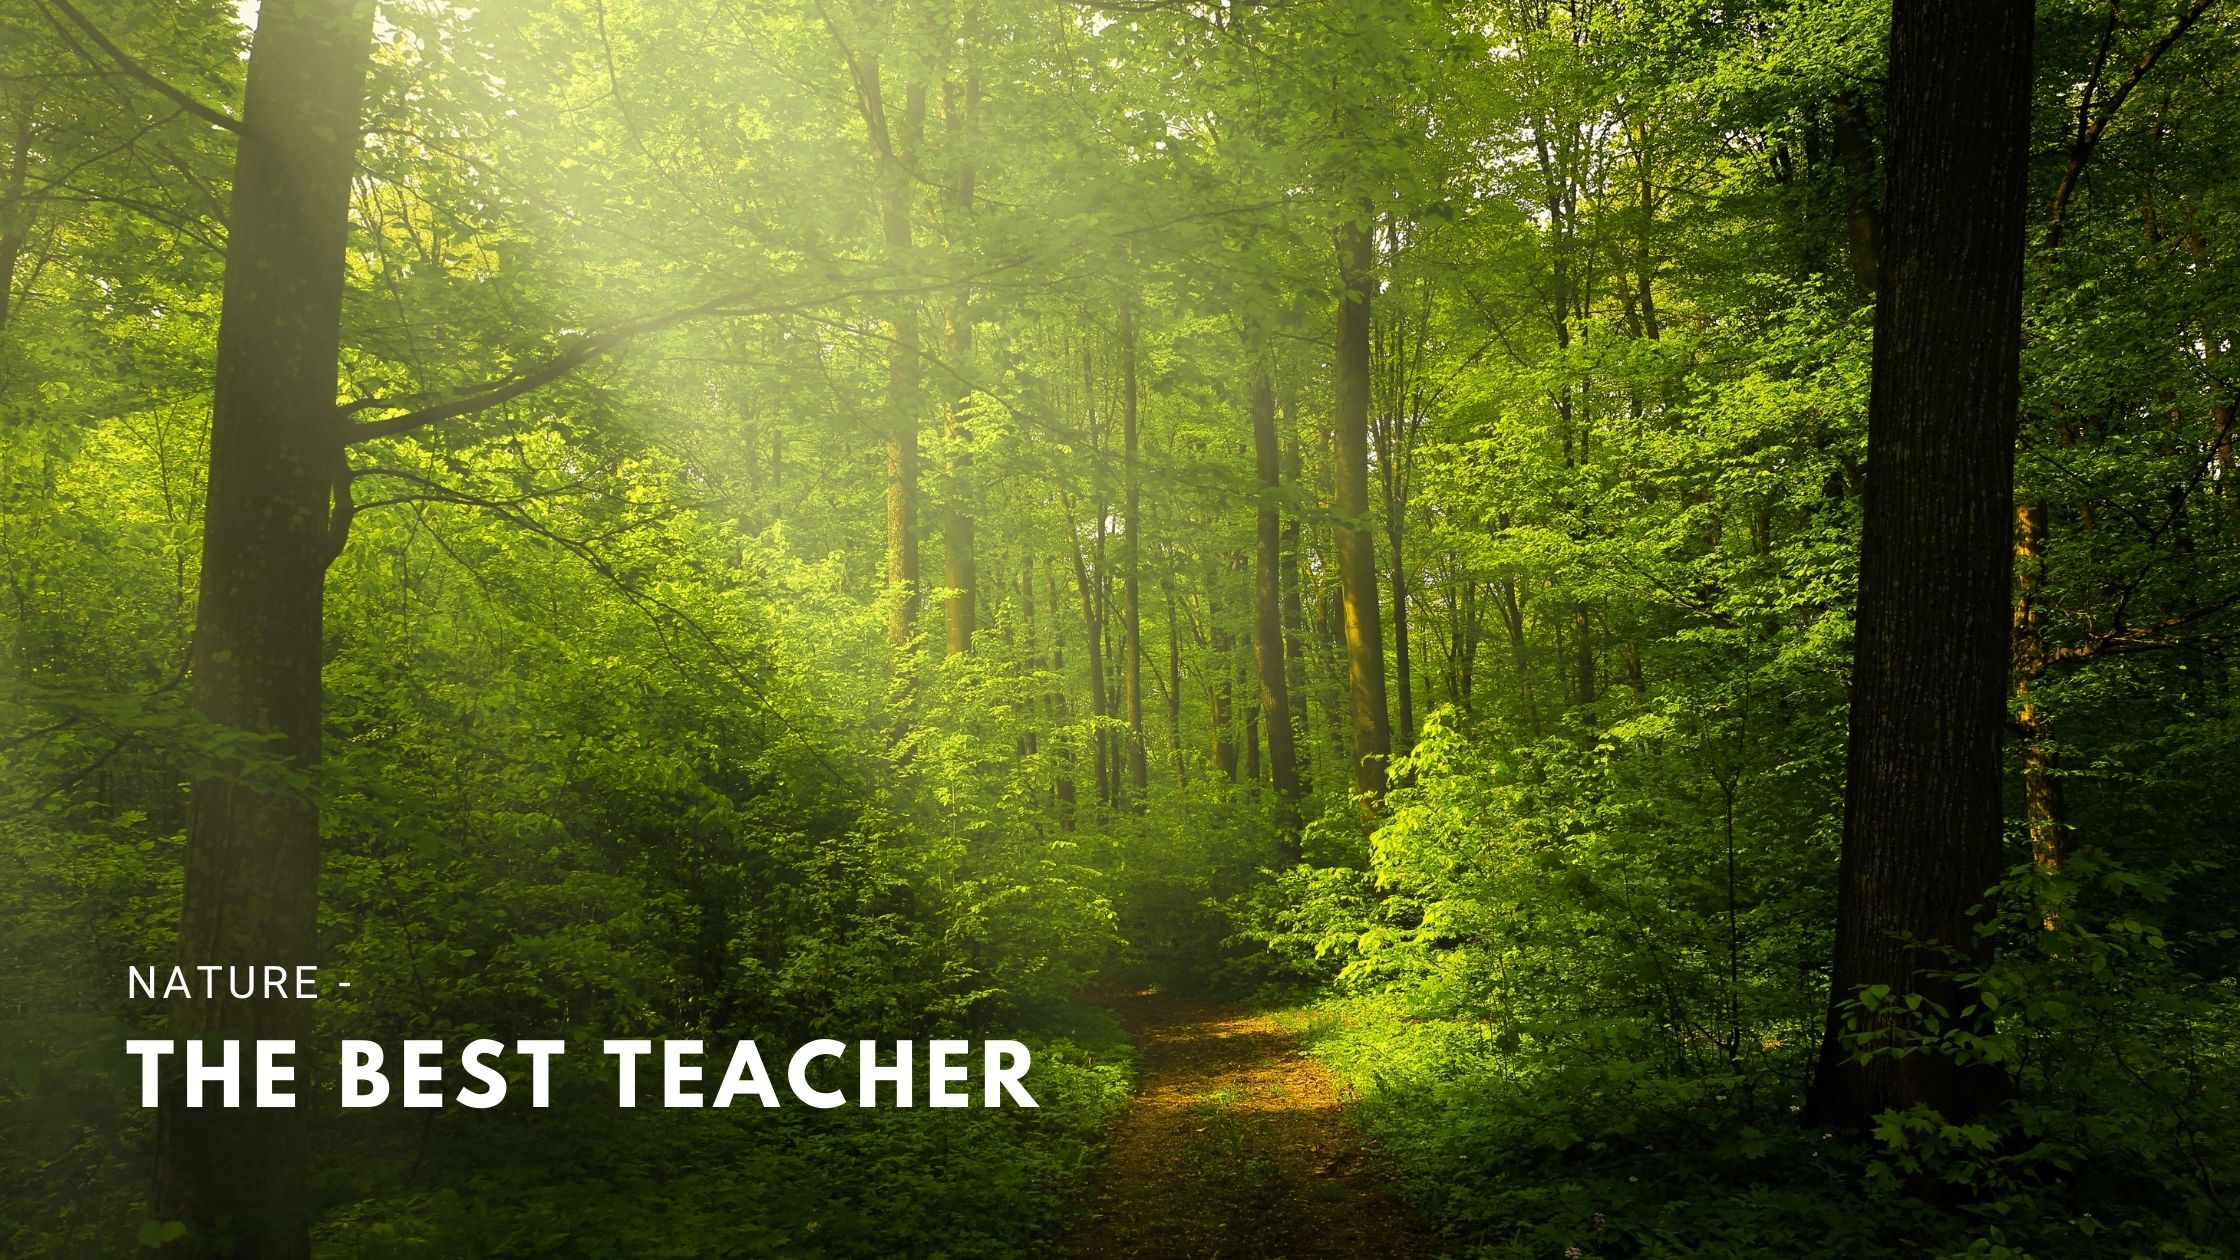 Nature - The Best Teacher for Mankind